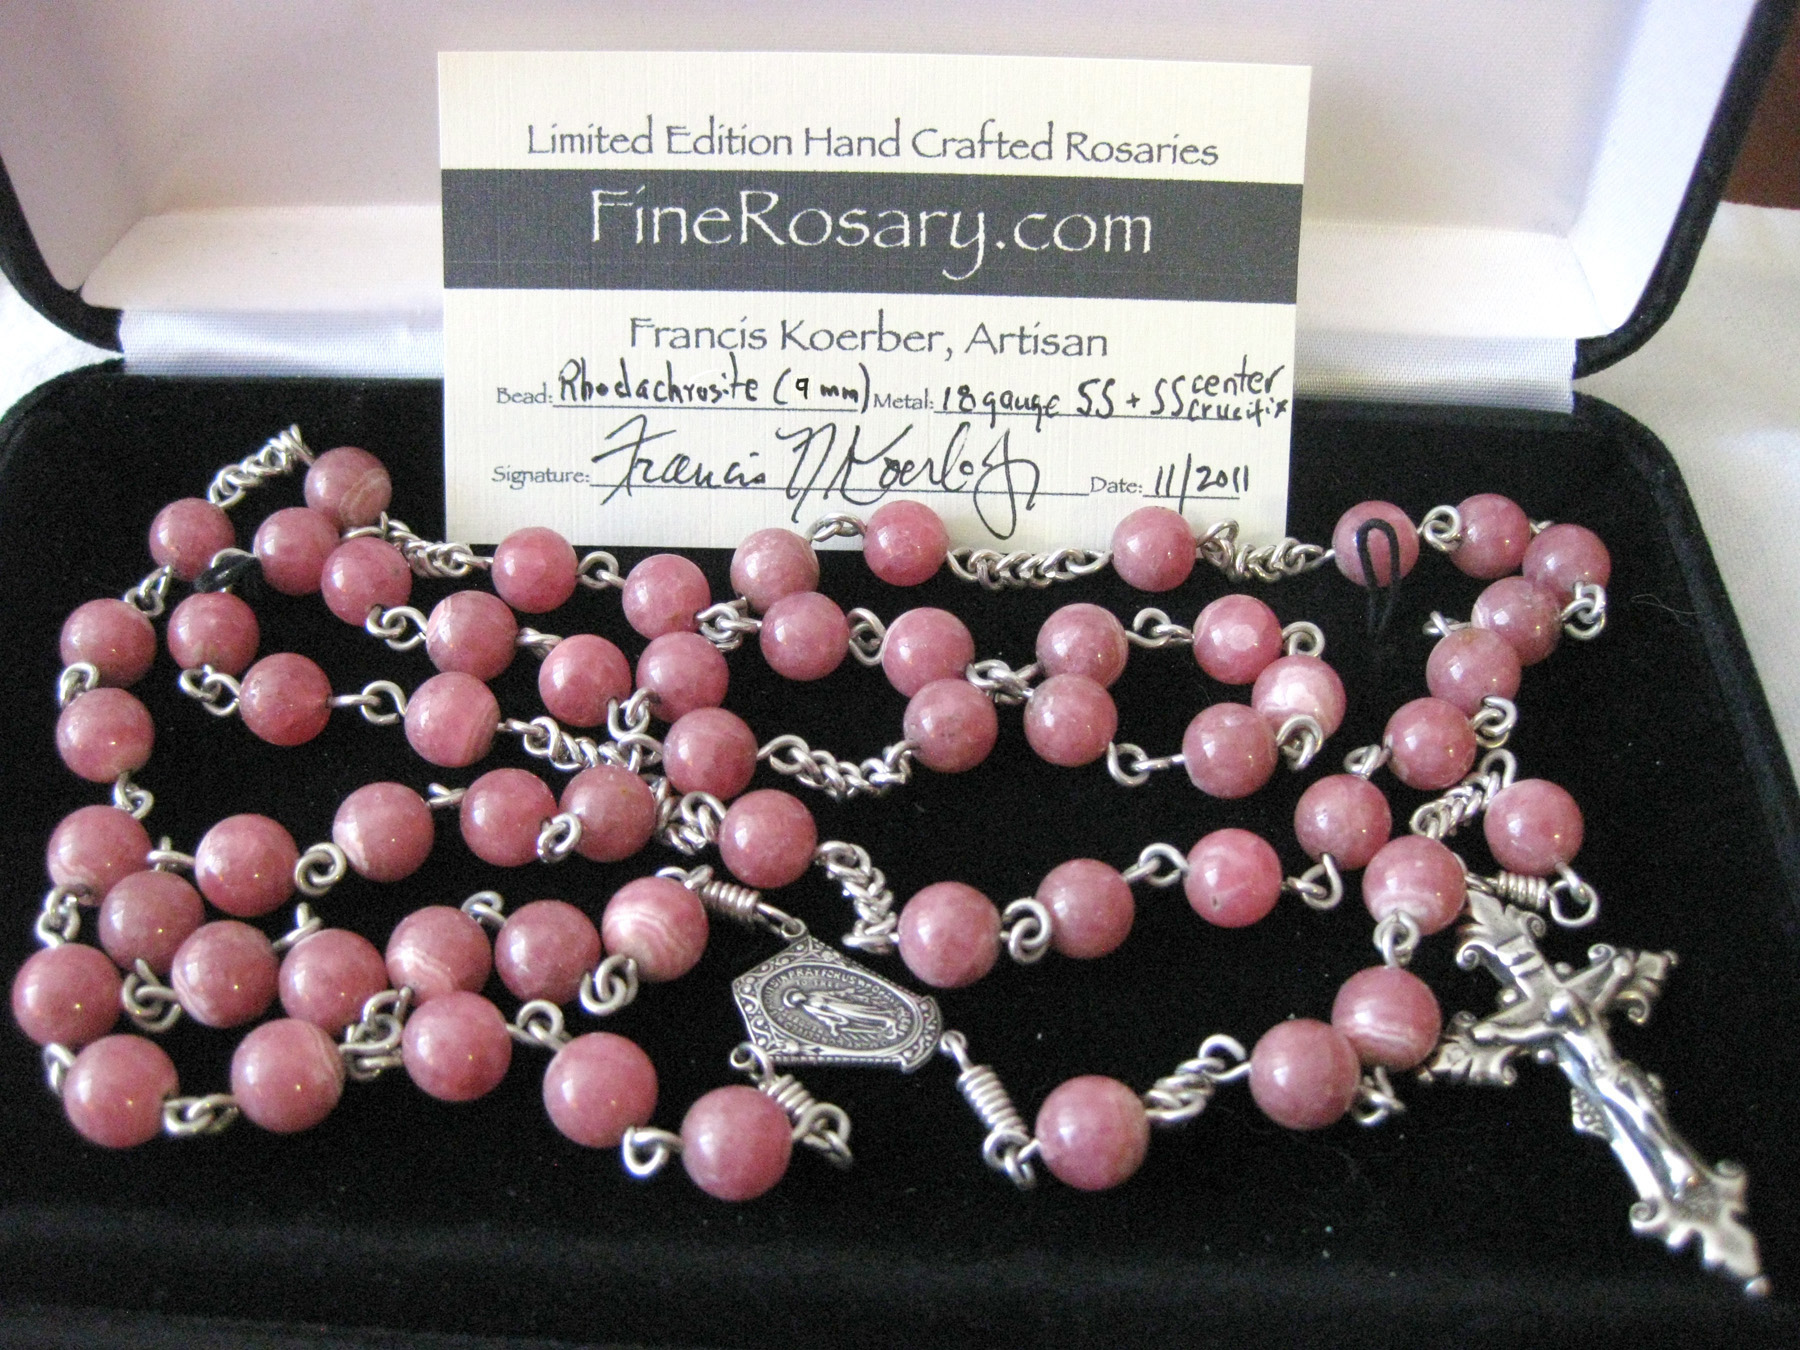 Rhodochrosite Rosary, handmade sterling silver chain, bows and eyelets and hand cast sterling parts by Francis Koerber.